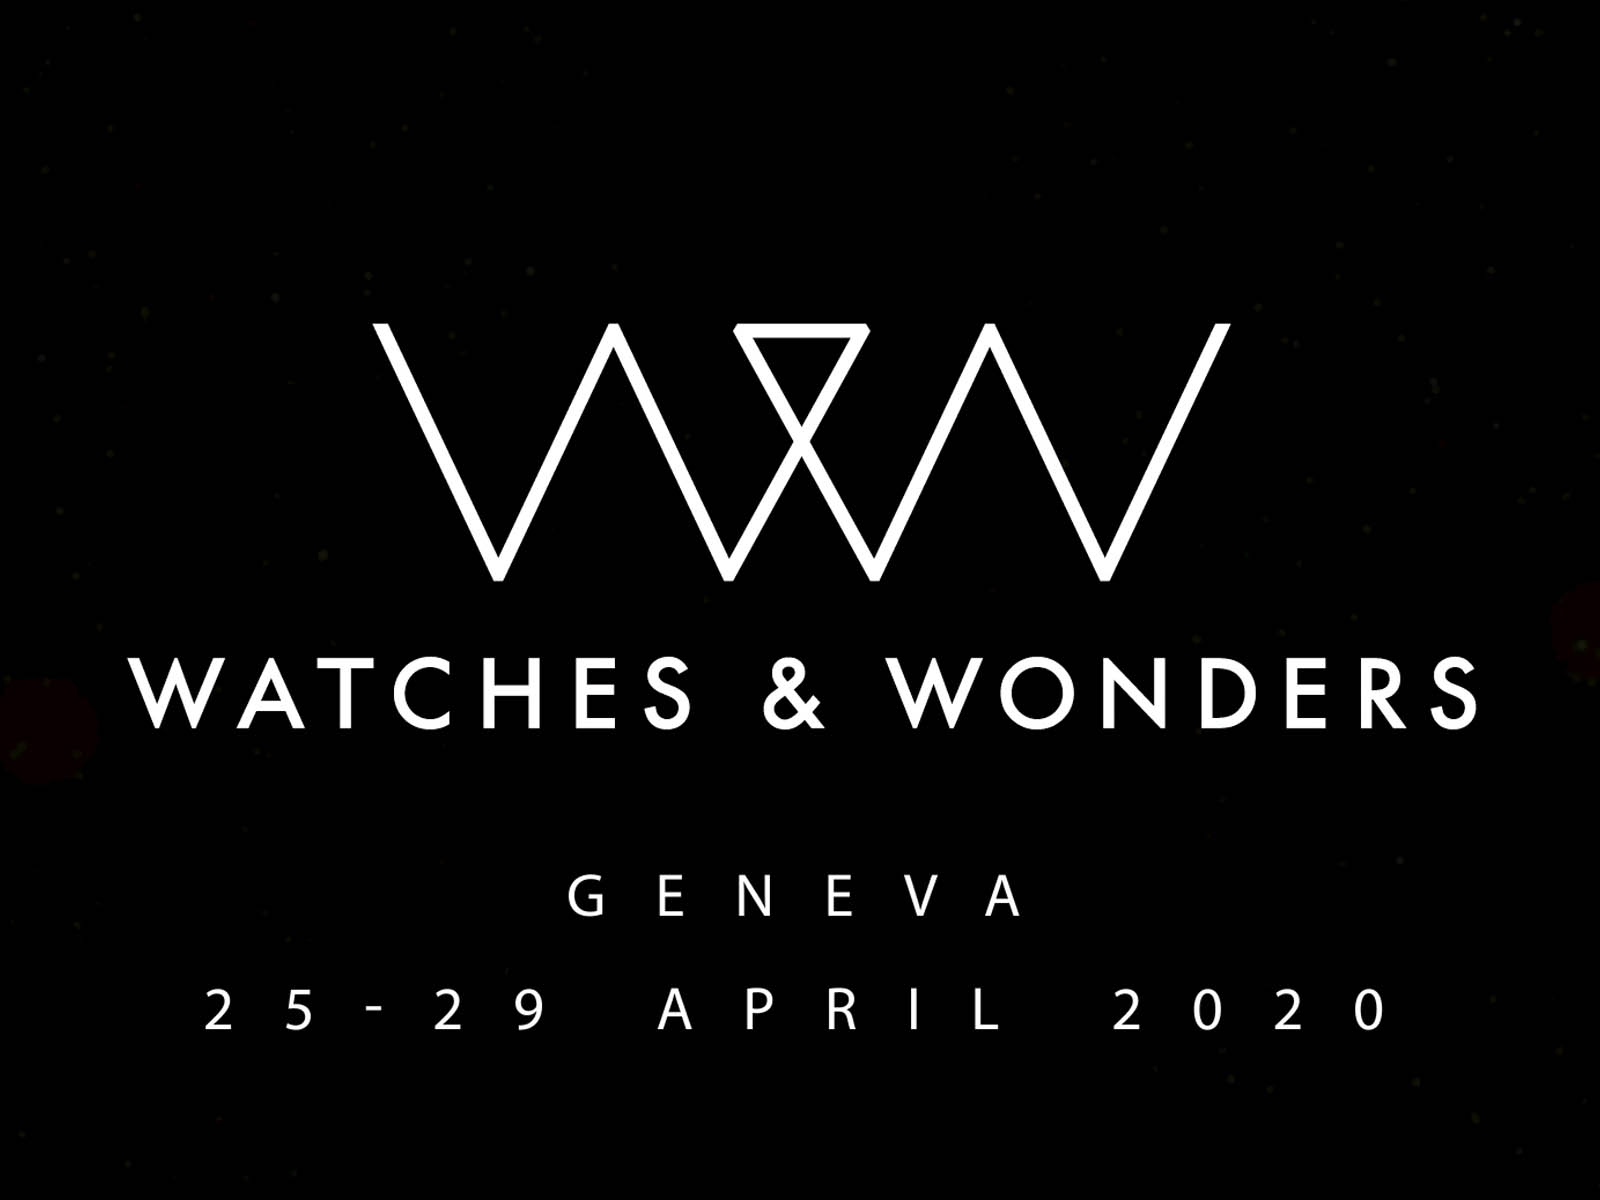 watches-wonders-geneva-new-format-sihh-6.jpg